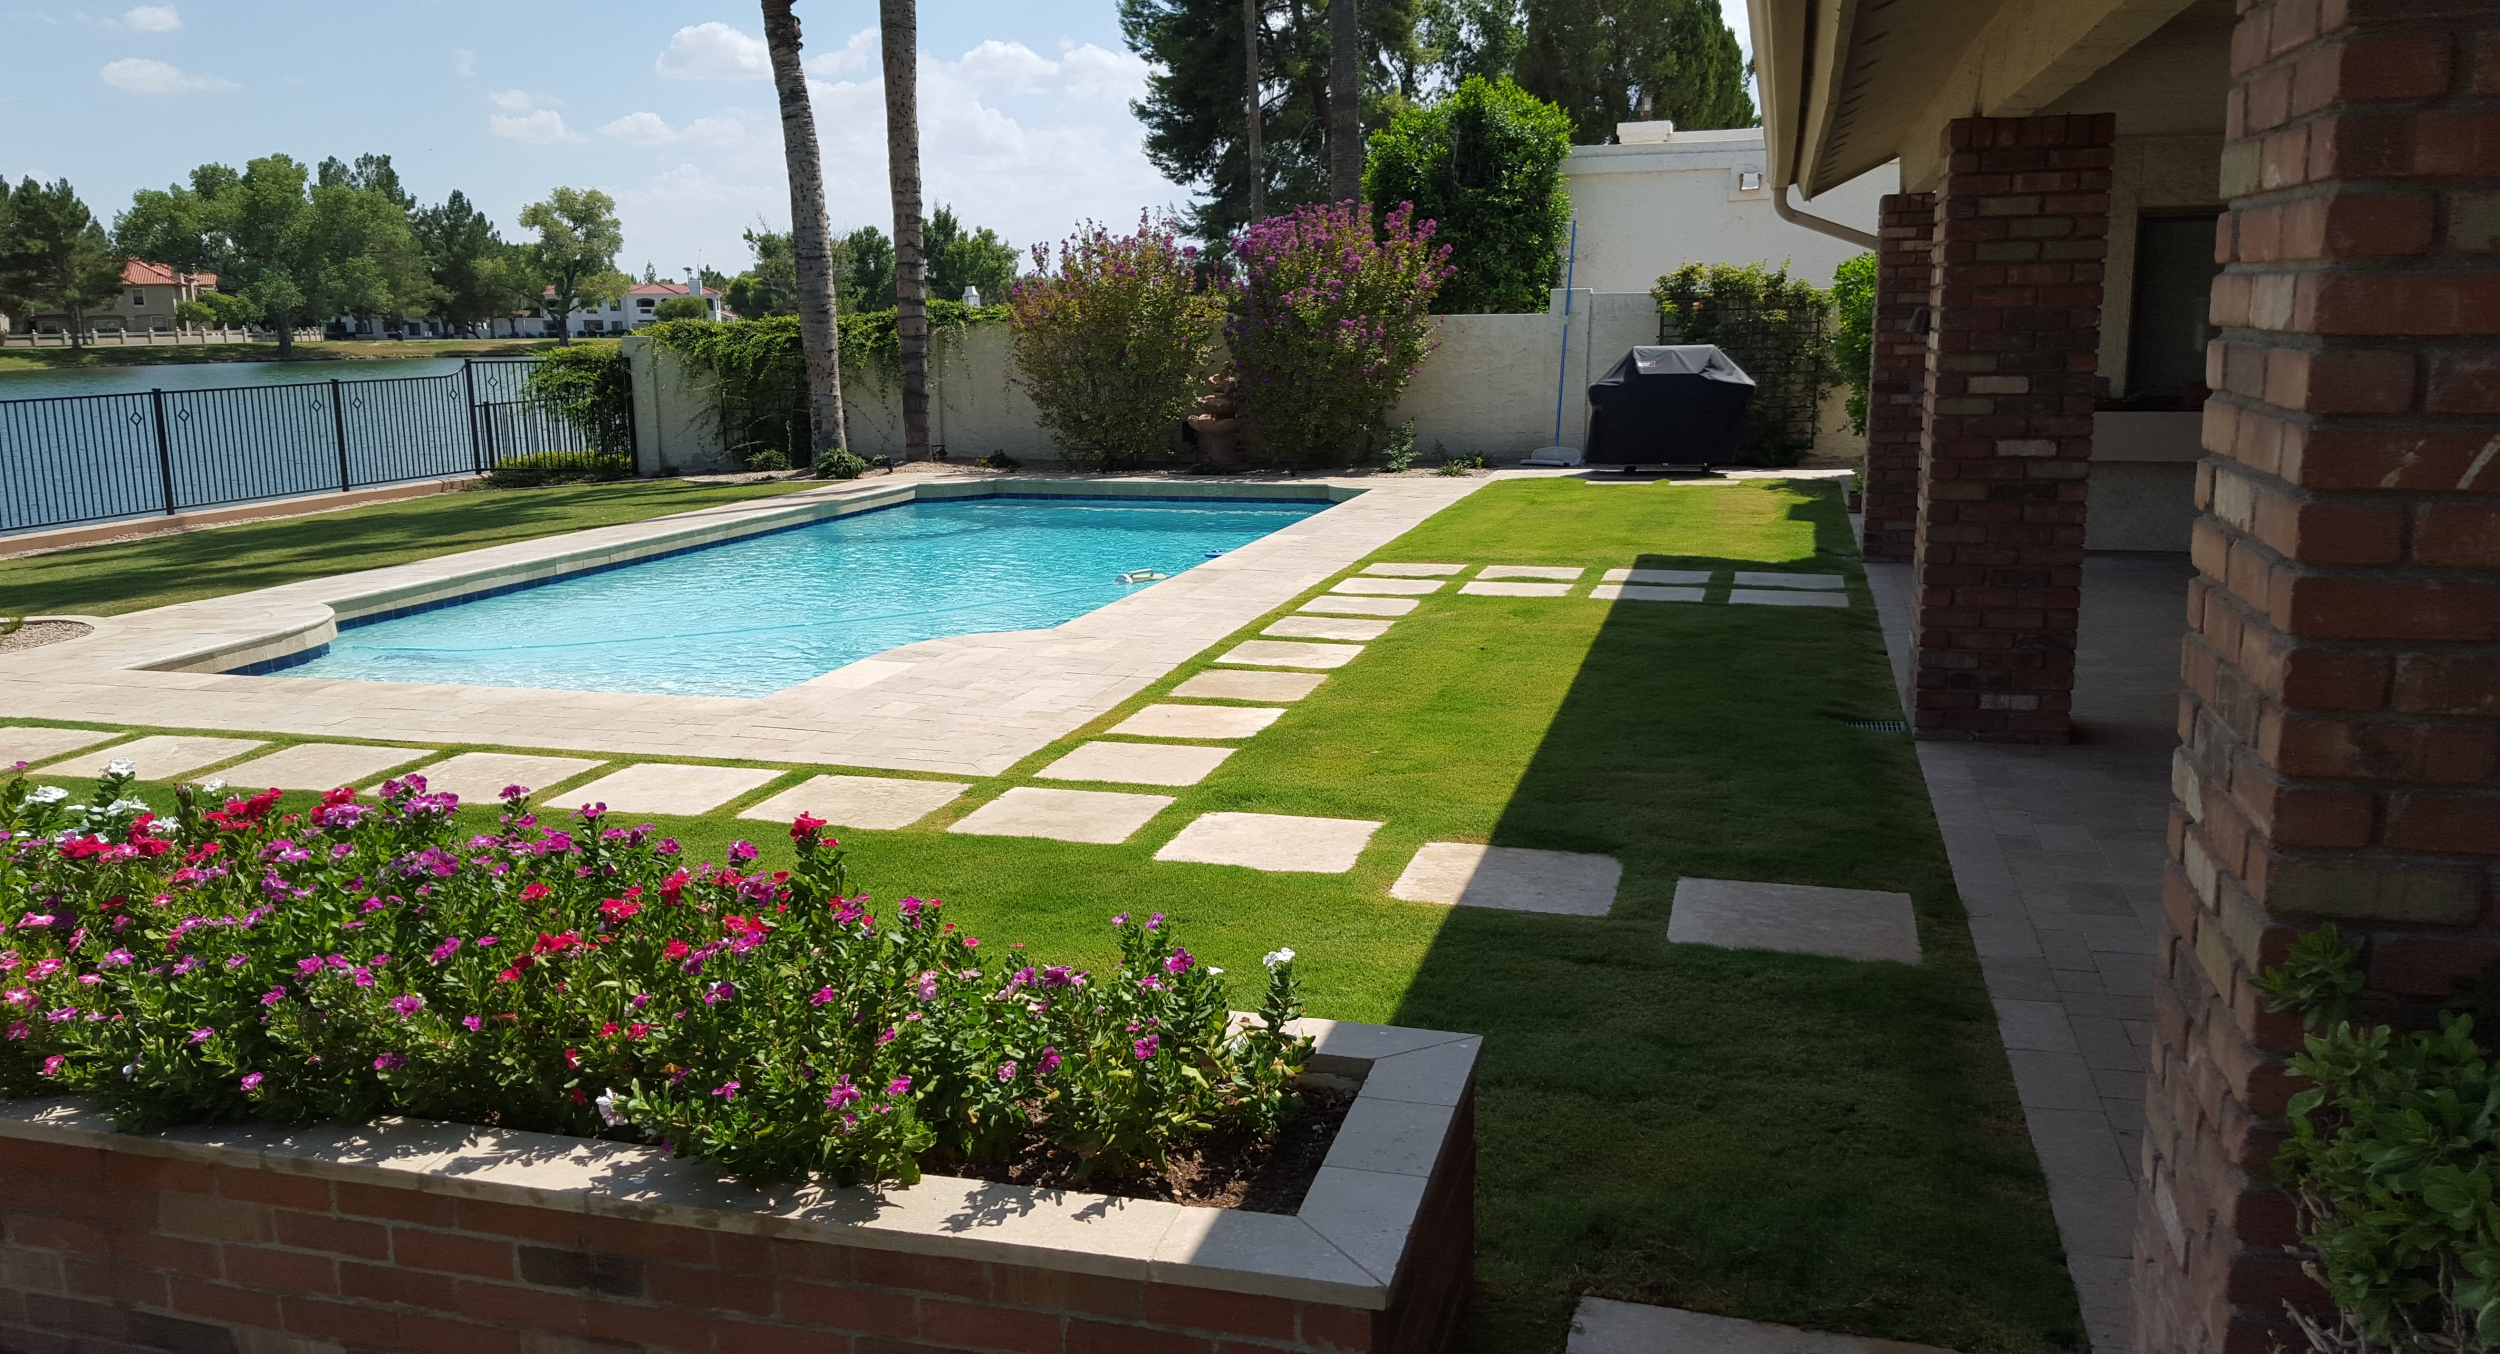 A totally changed backyard with the sod and pavers update swimming pool Scottsdale project completed. Very plush and modern without putting on airs.